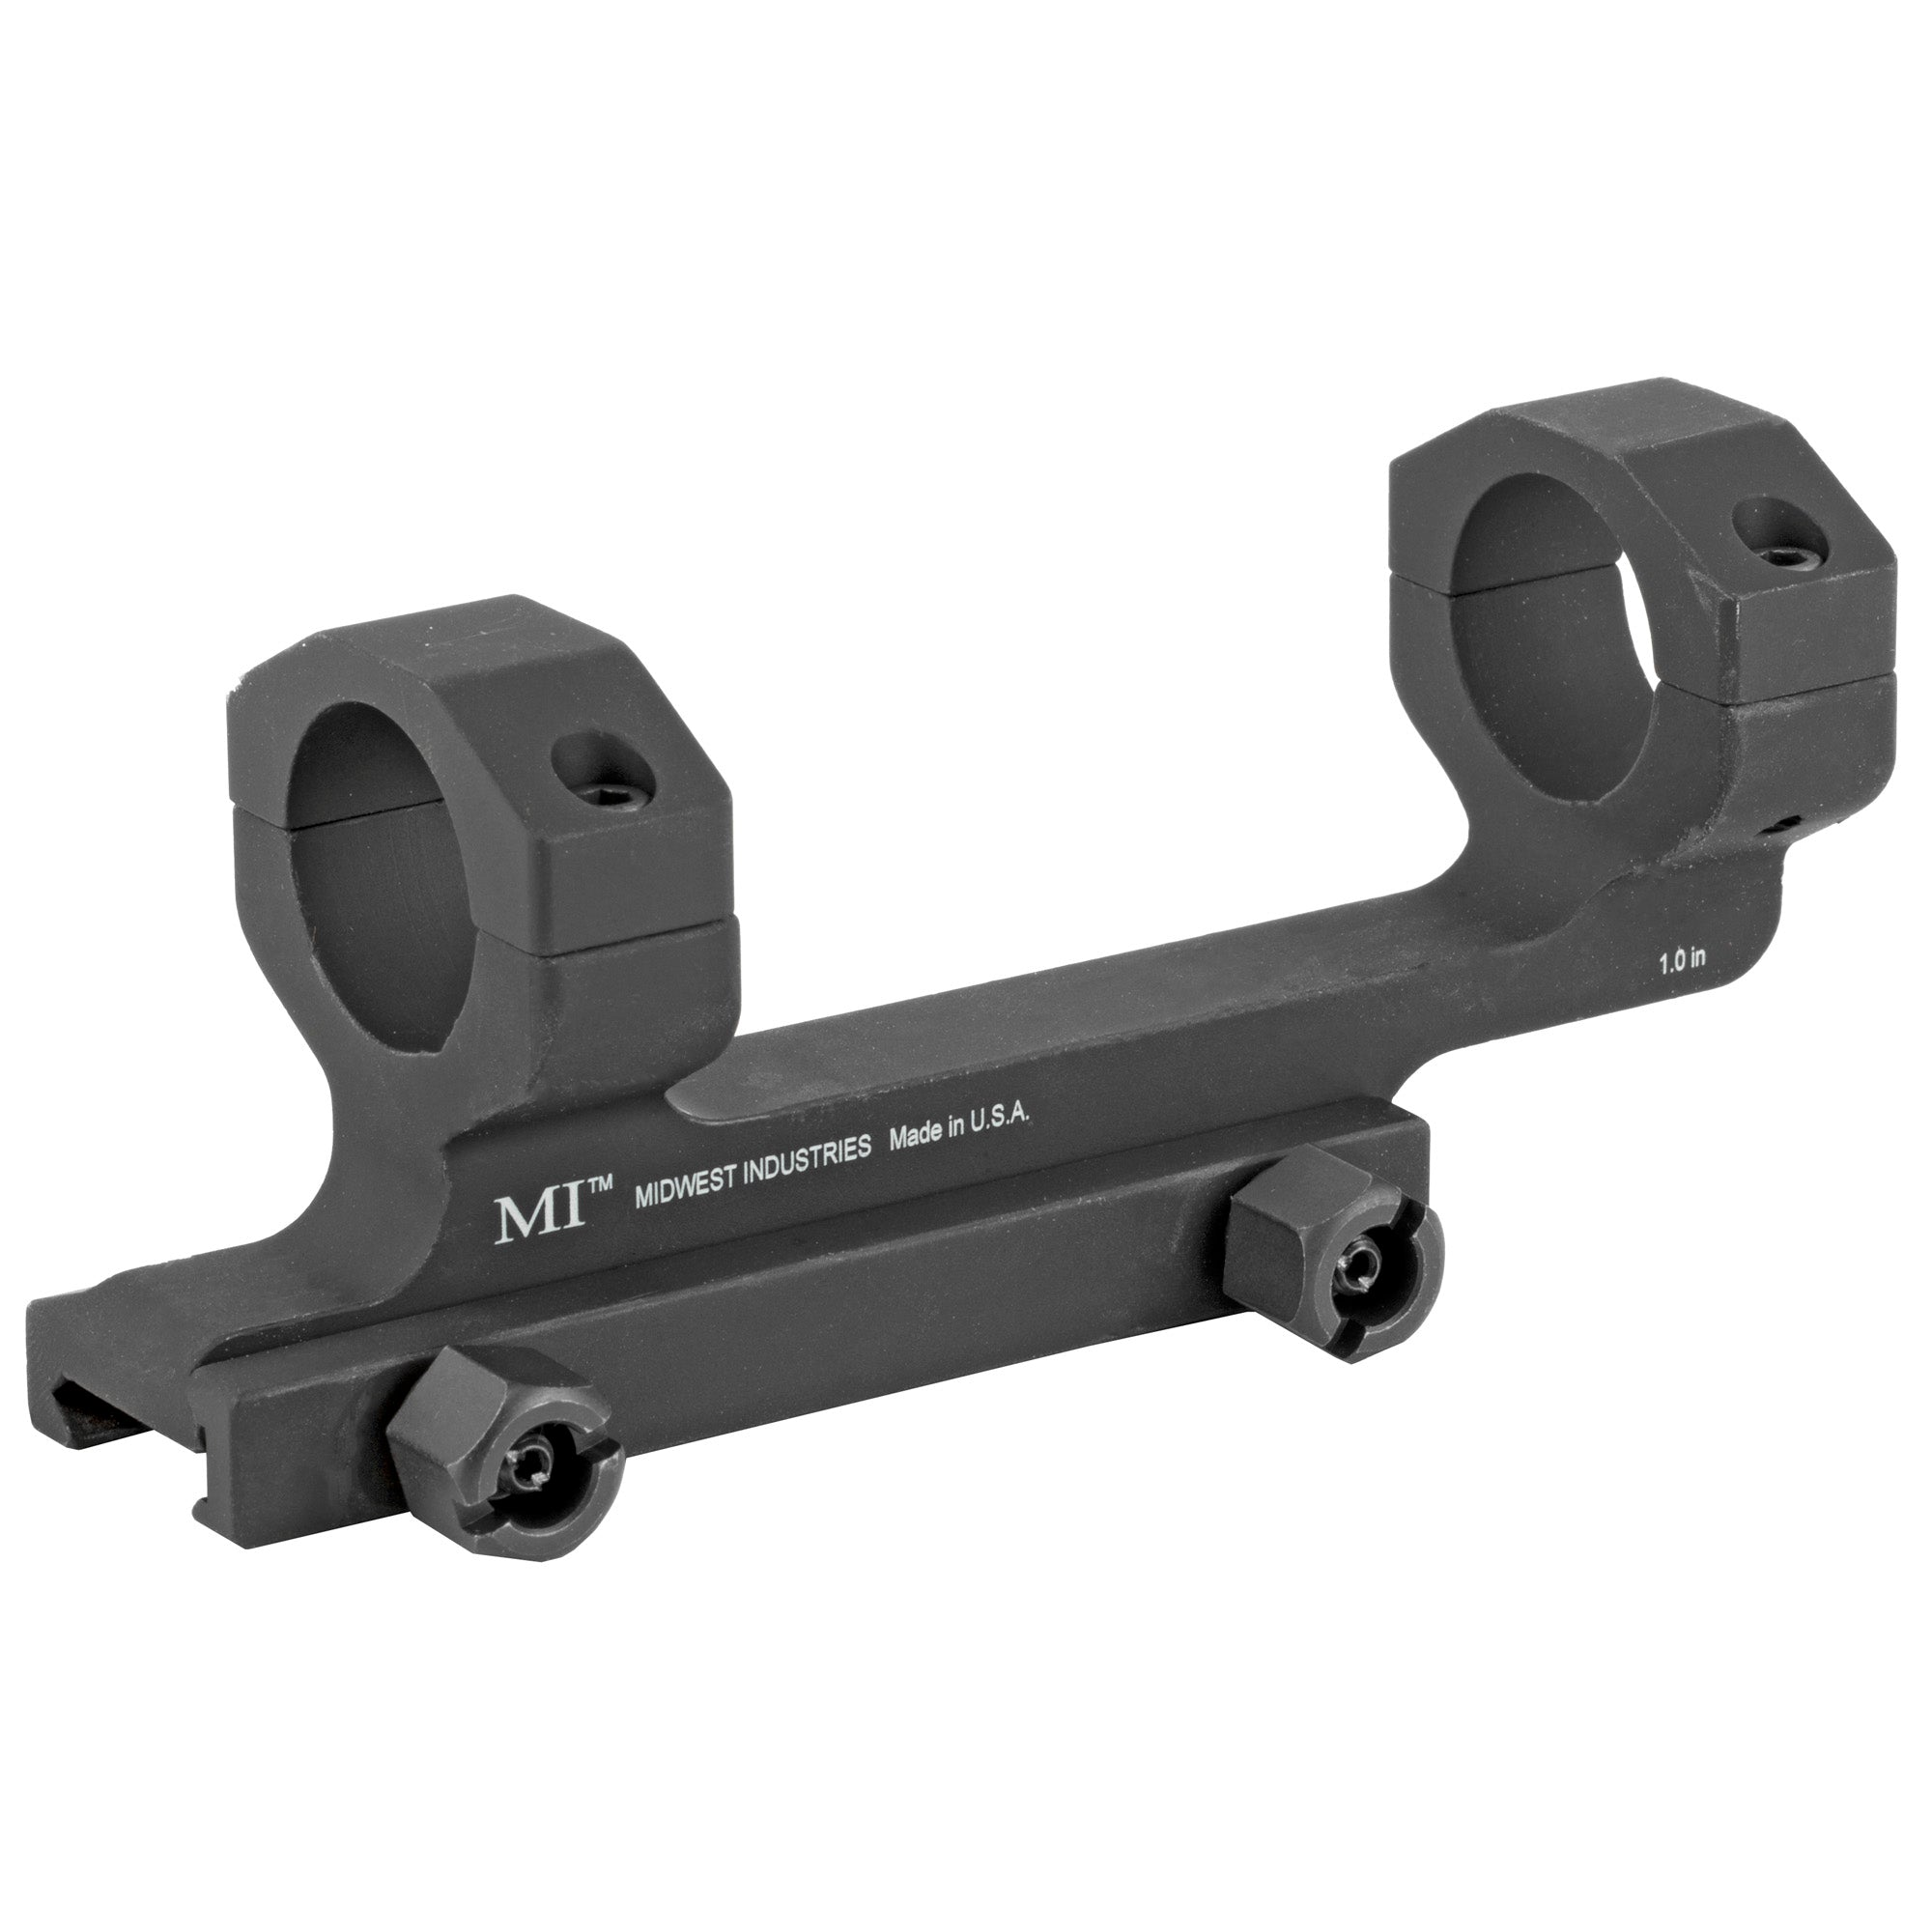 MIDWEST INDUSTRIES MI-SM1.0 AR-15 1 INCH SCOPE MOUNT